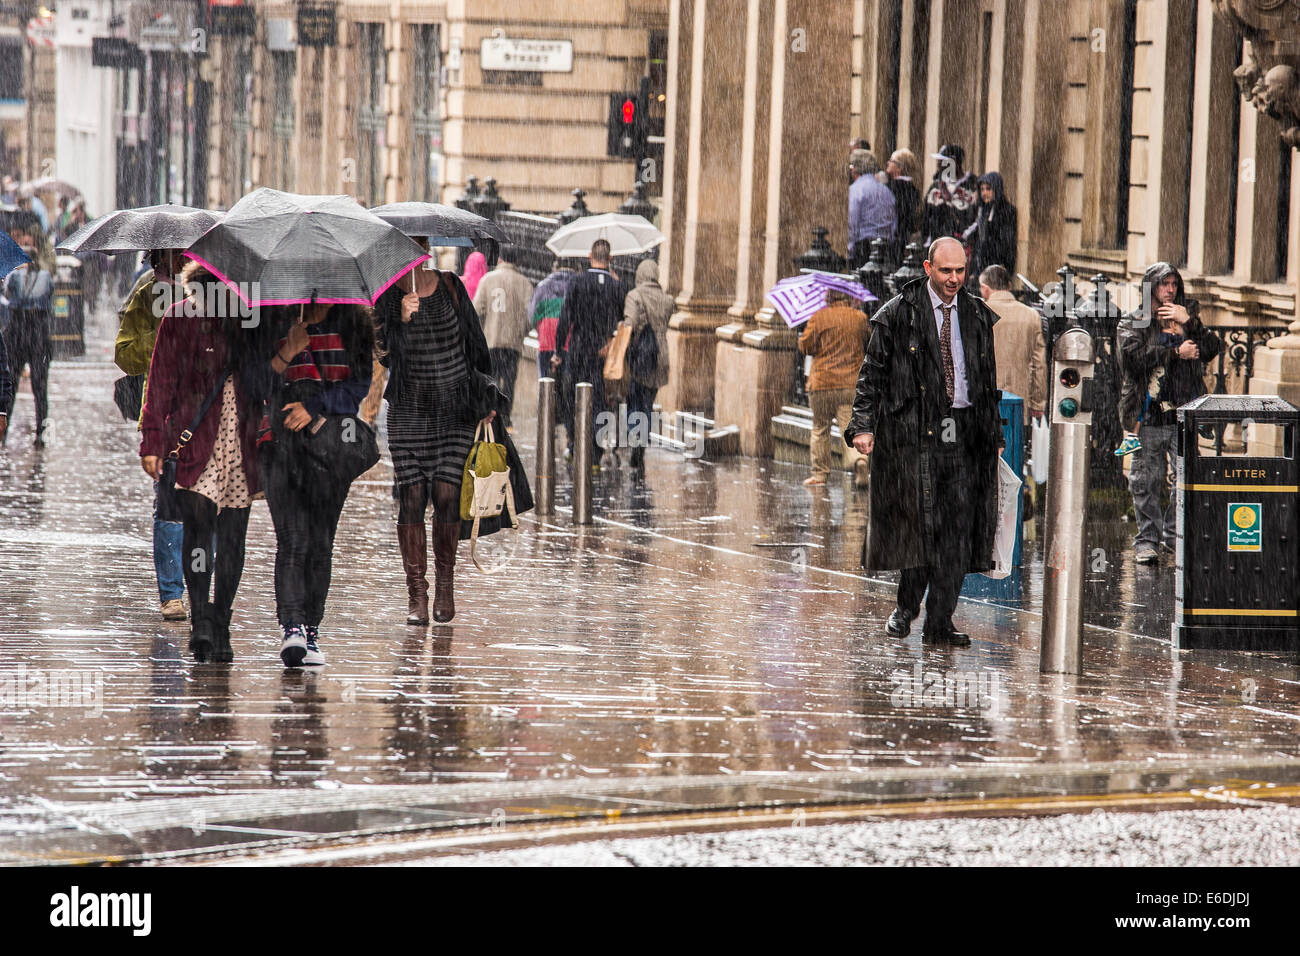 Many people get soaked as torrential rain lashes down during a lunchtime walk. Buchanan Street, Glasgow, Scotland, - Stock Image